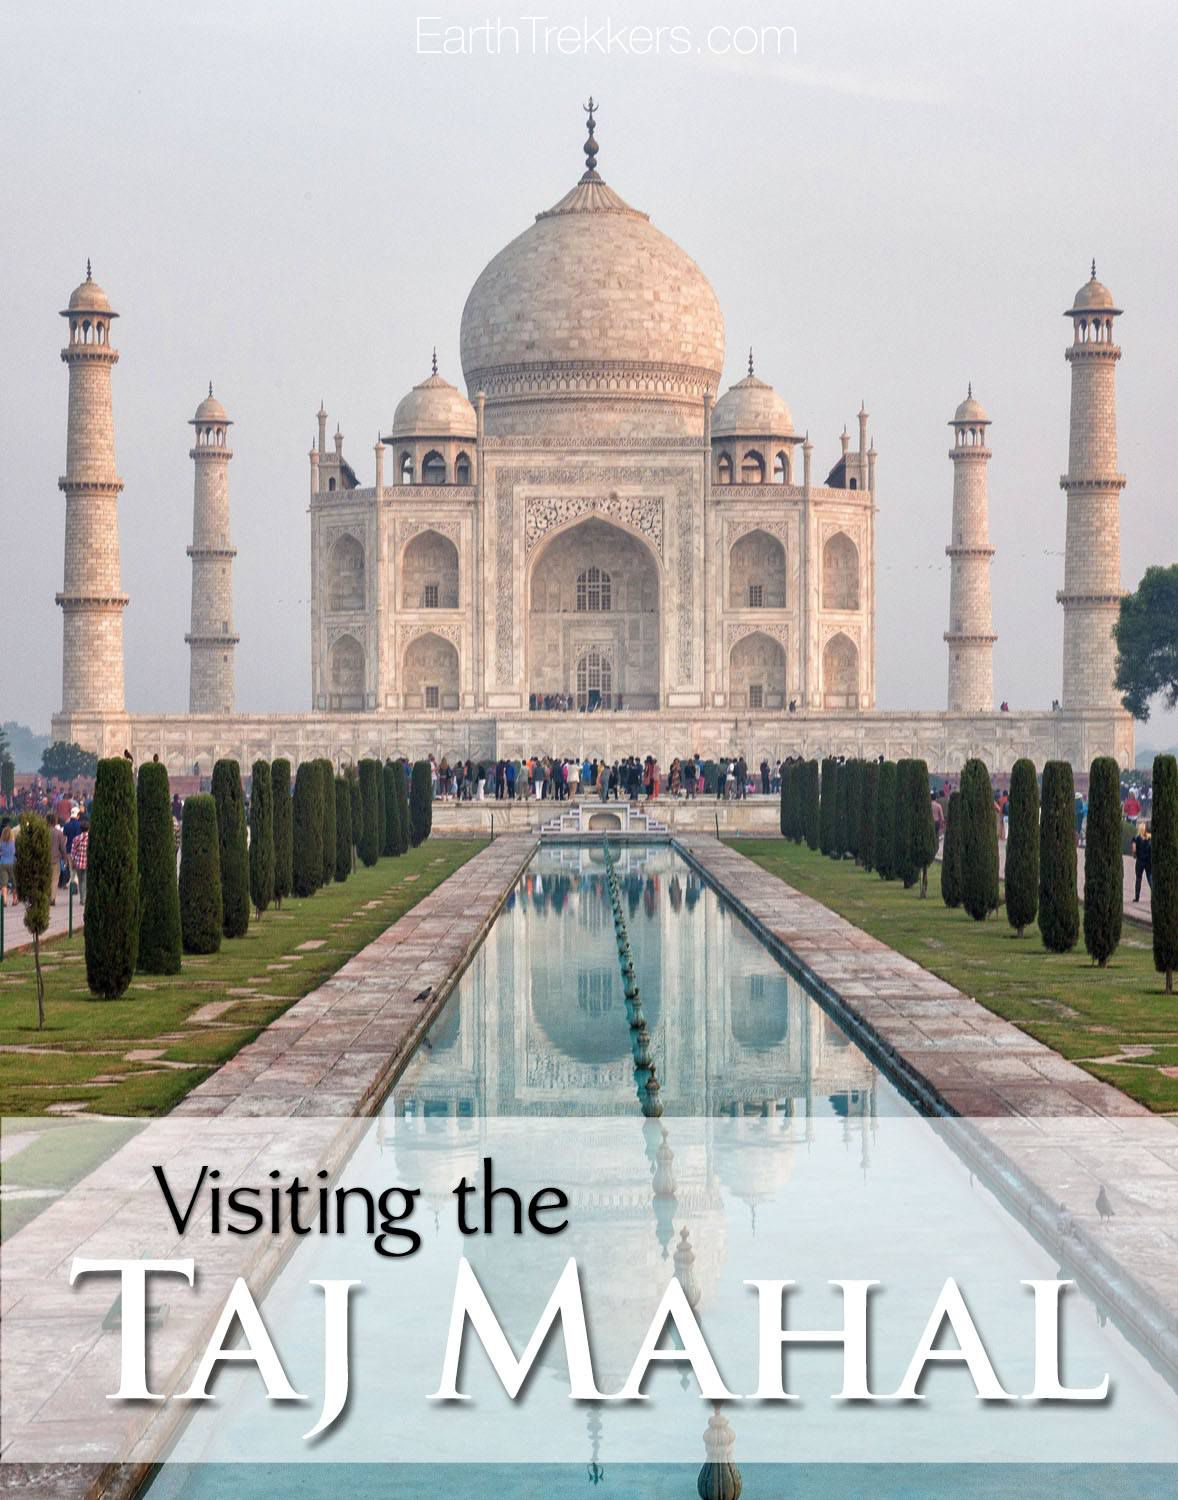 Visiting the Taj Mahal